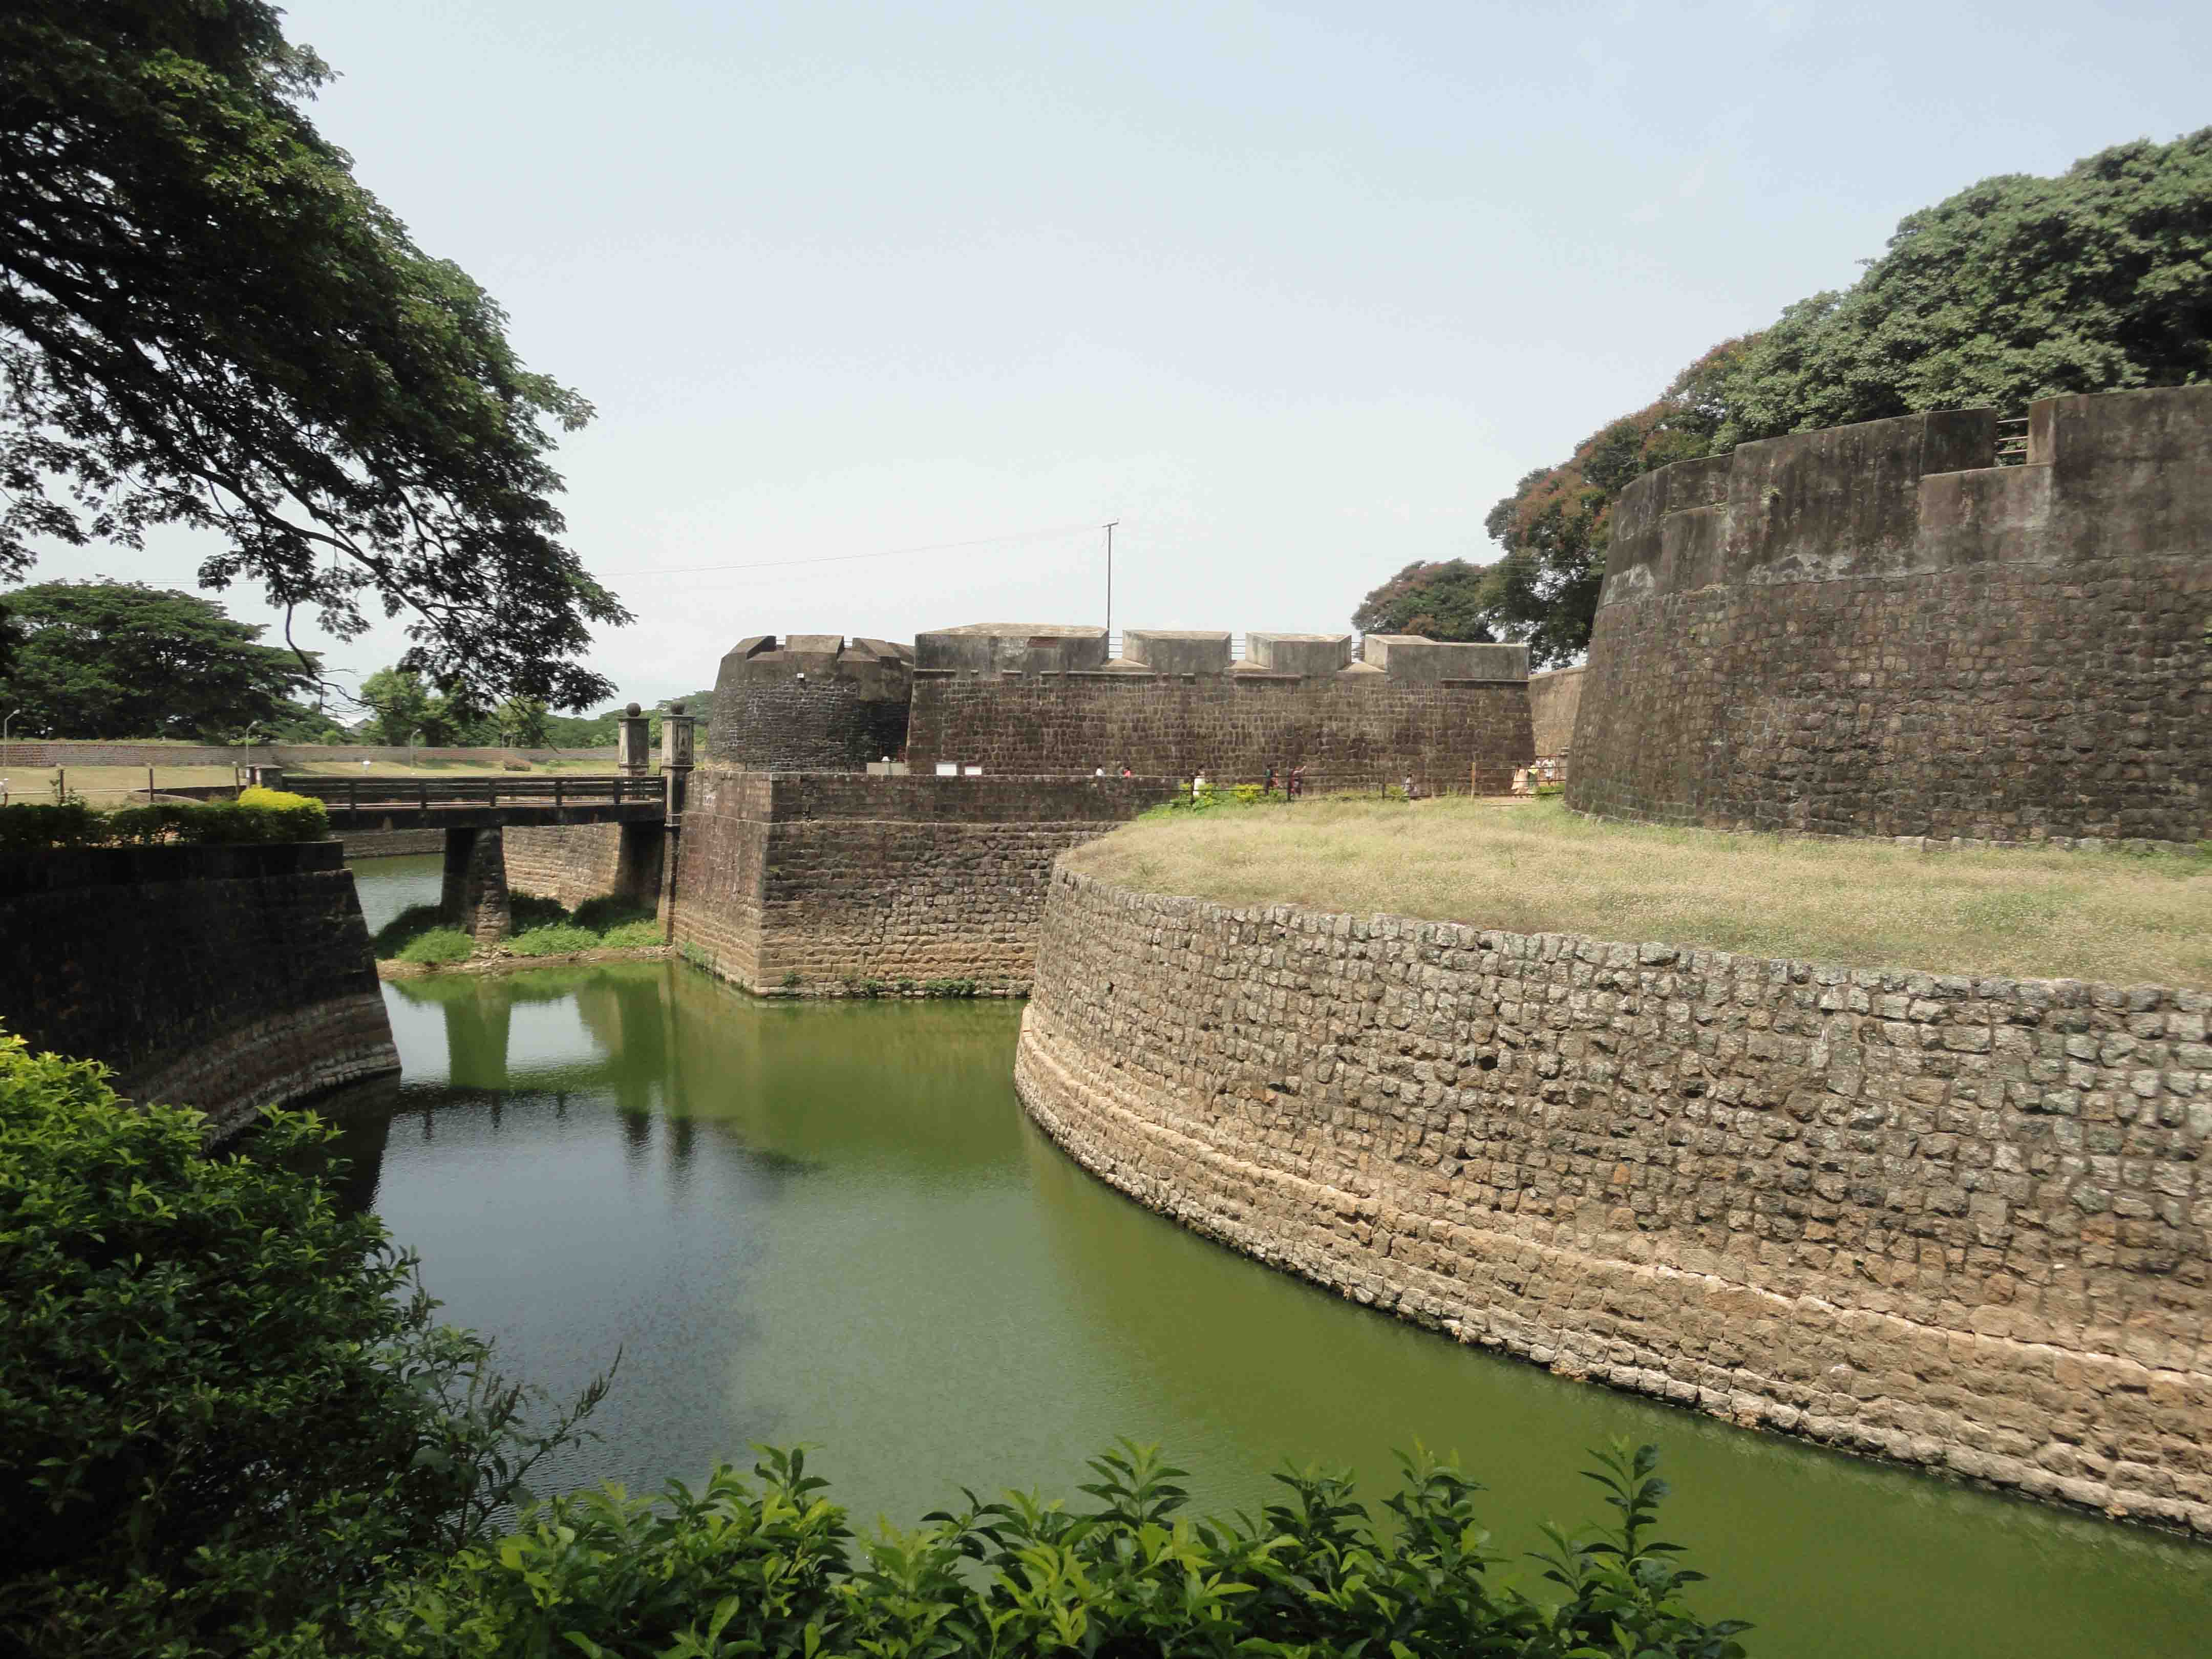 dating palakkad Palakkad has a long history dating back to the paleolithic period a large number of megalithic relics have been discovered from here palakkad fort palakkad fort, situated in the very.